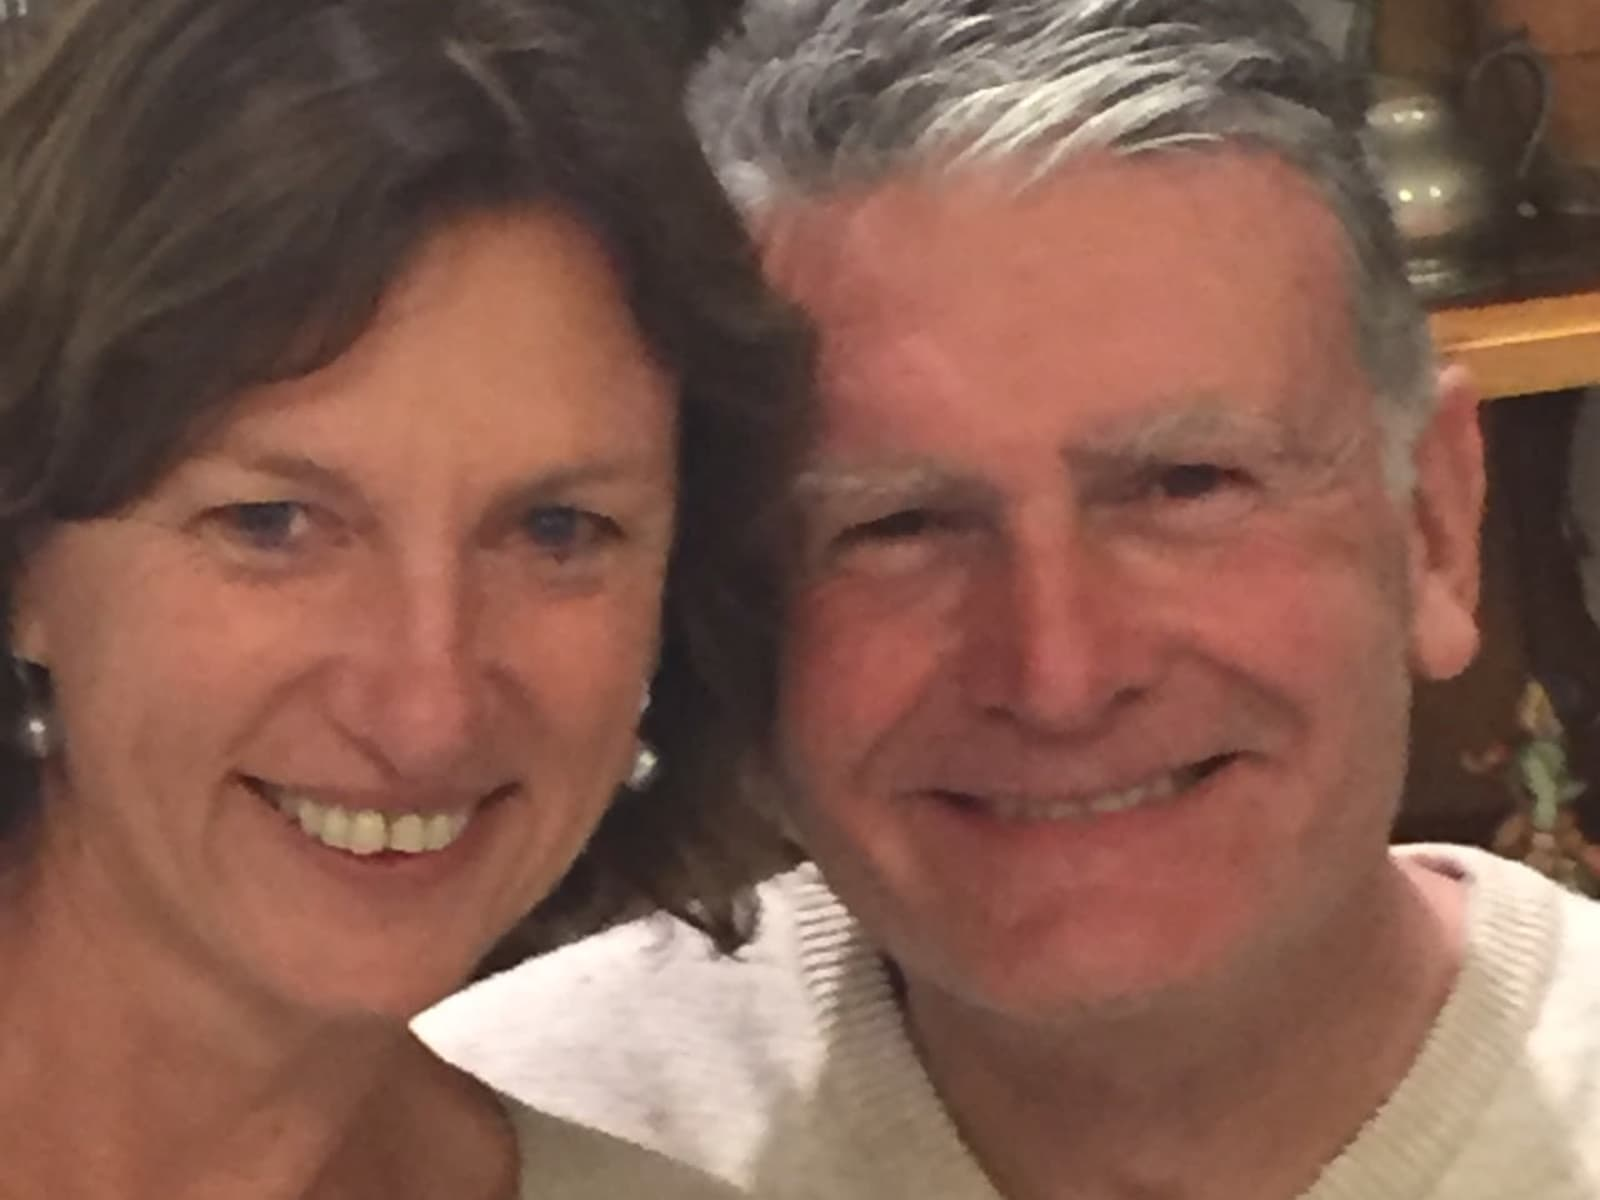 Angela & Gilles from Warrawee, New South Wales, Australia